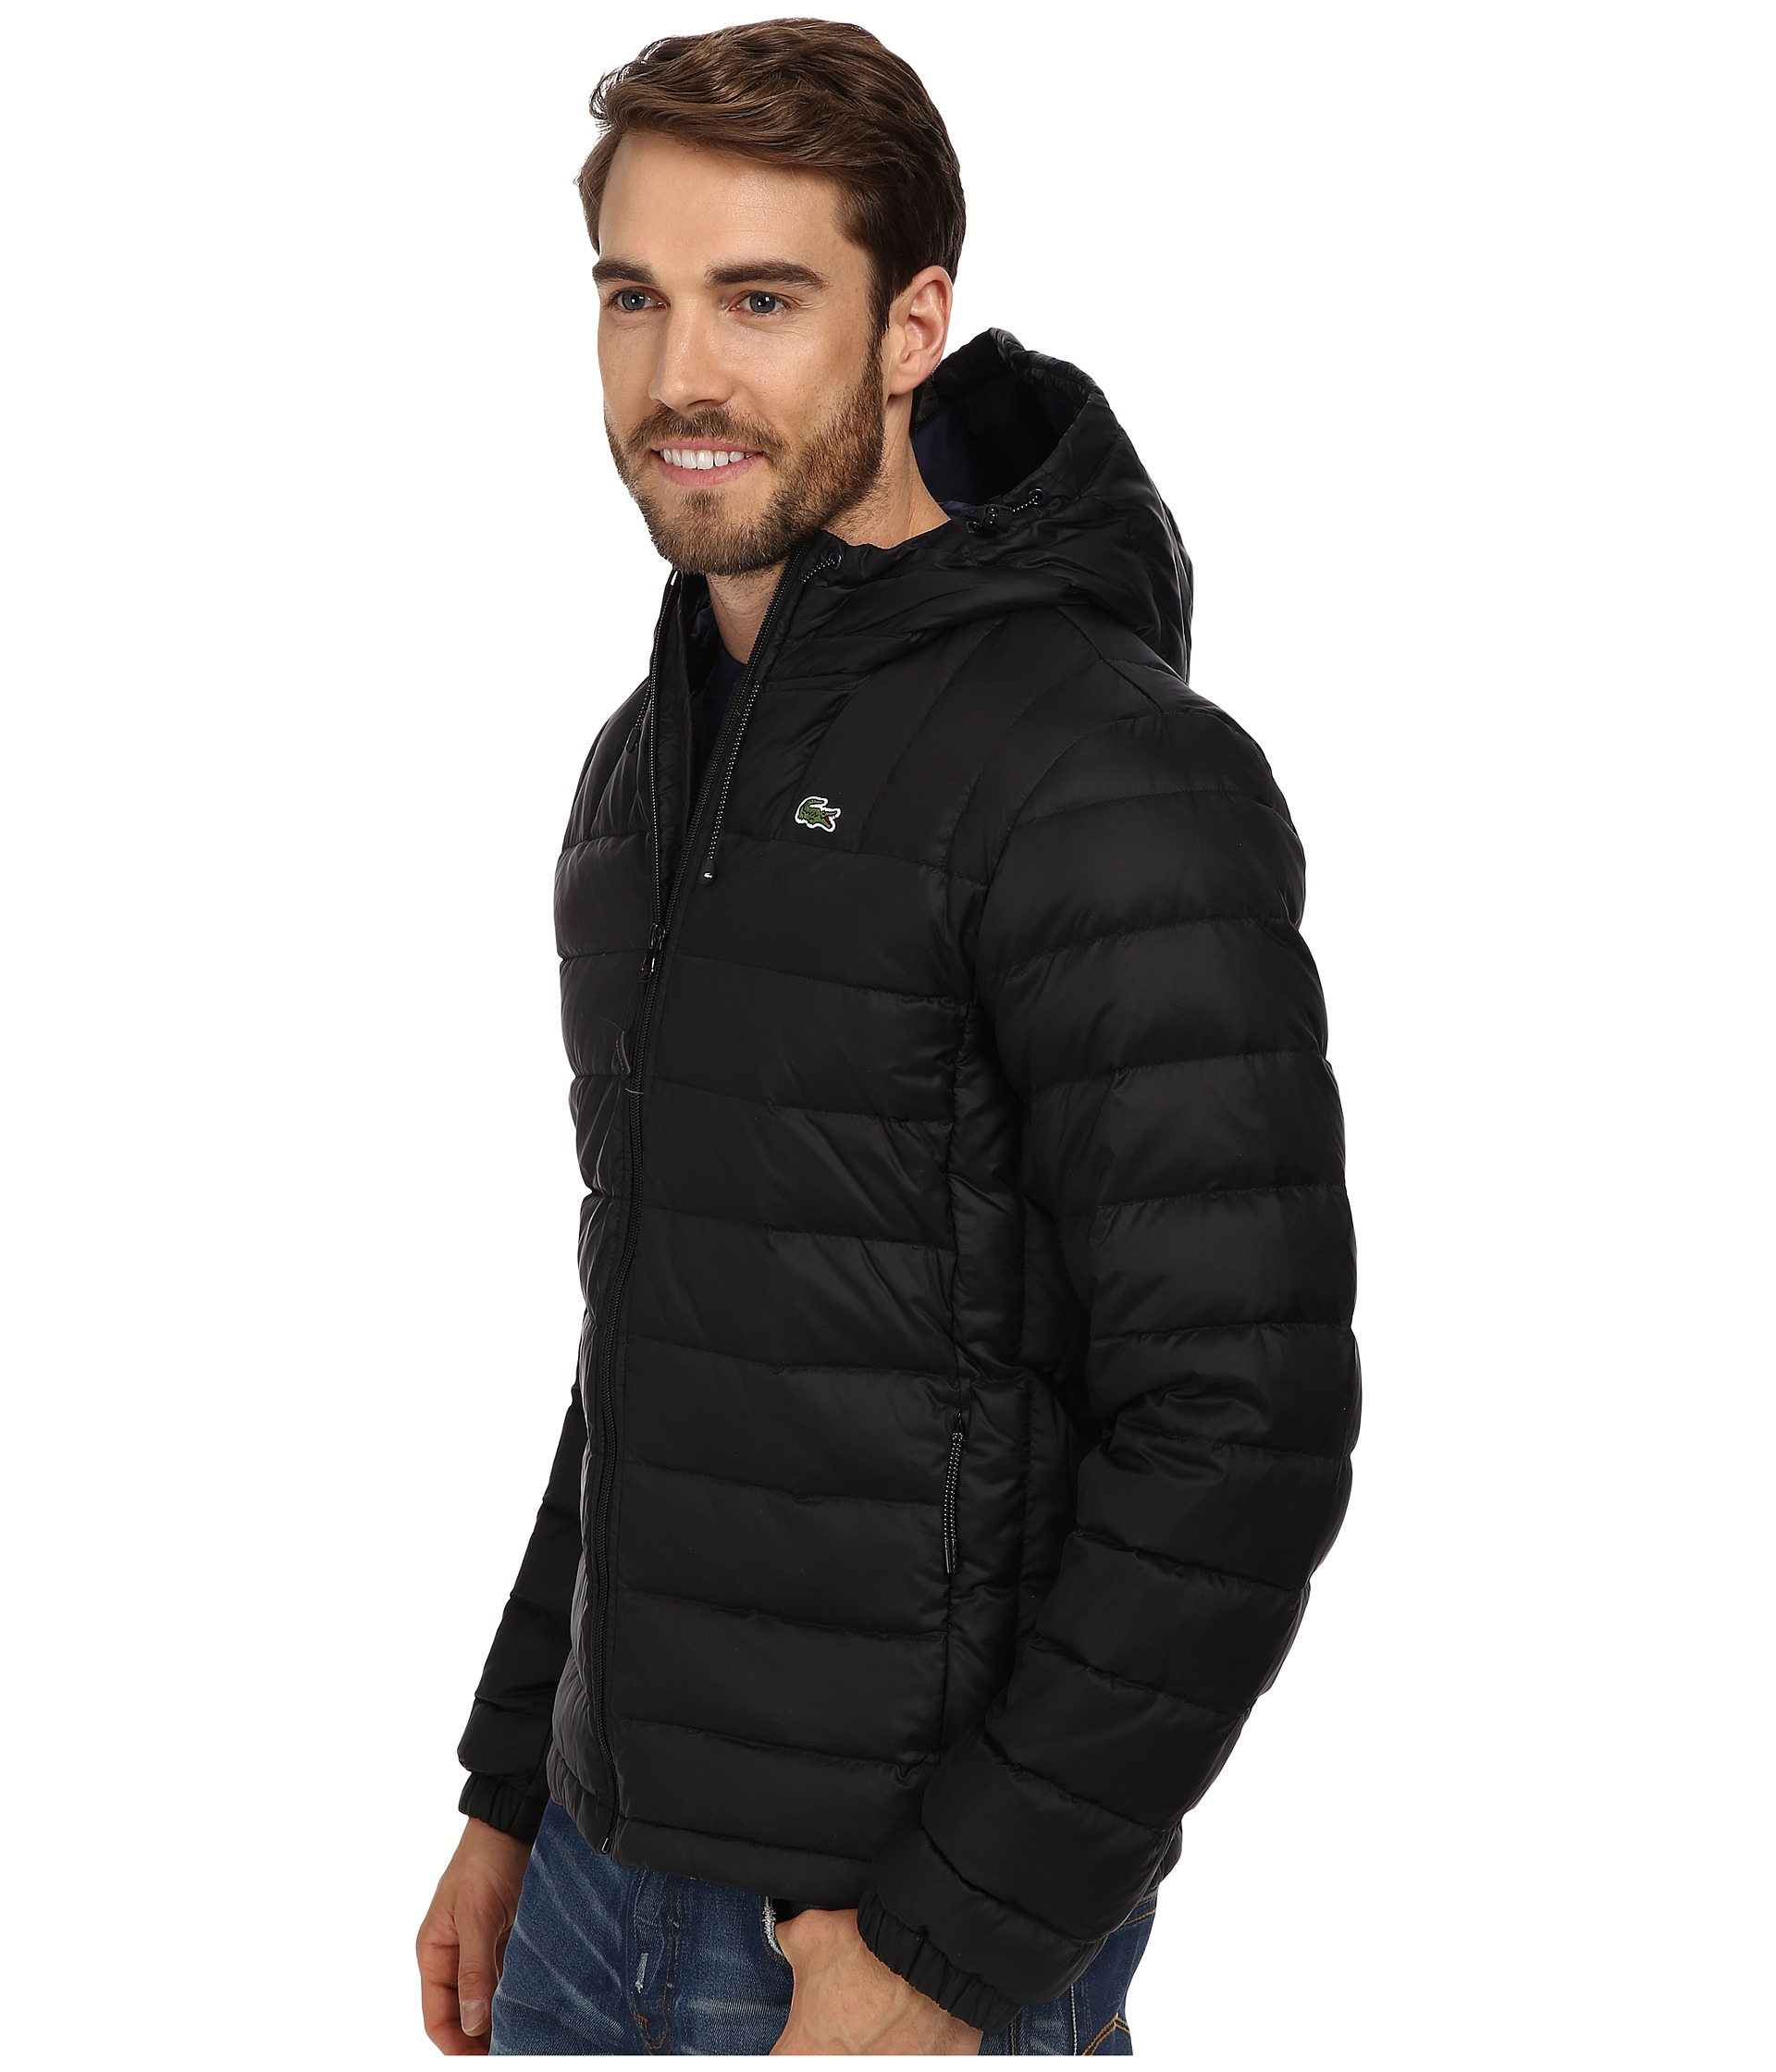 lacoste packable down jacket black navy blue shipped free at zappos. Black Bedroom Furniture Sets. Home Design Ideas